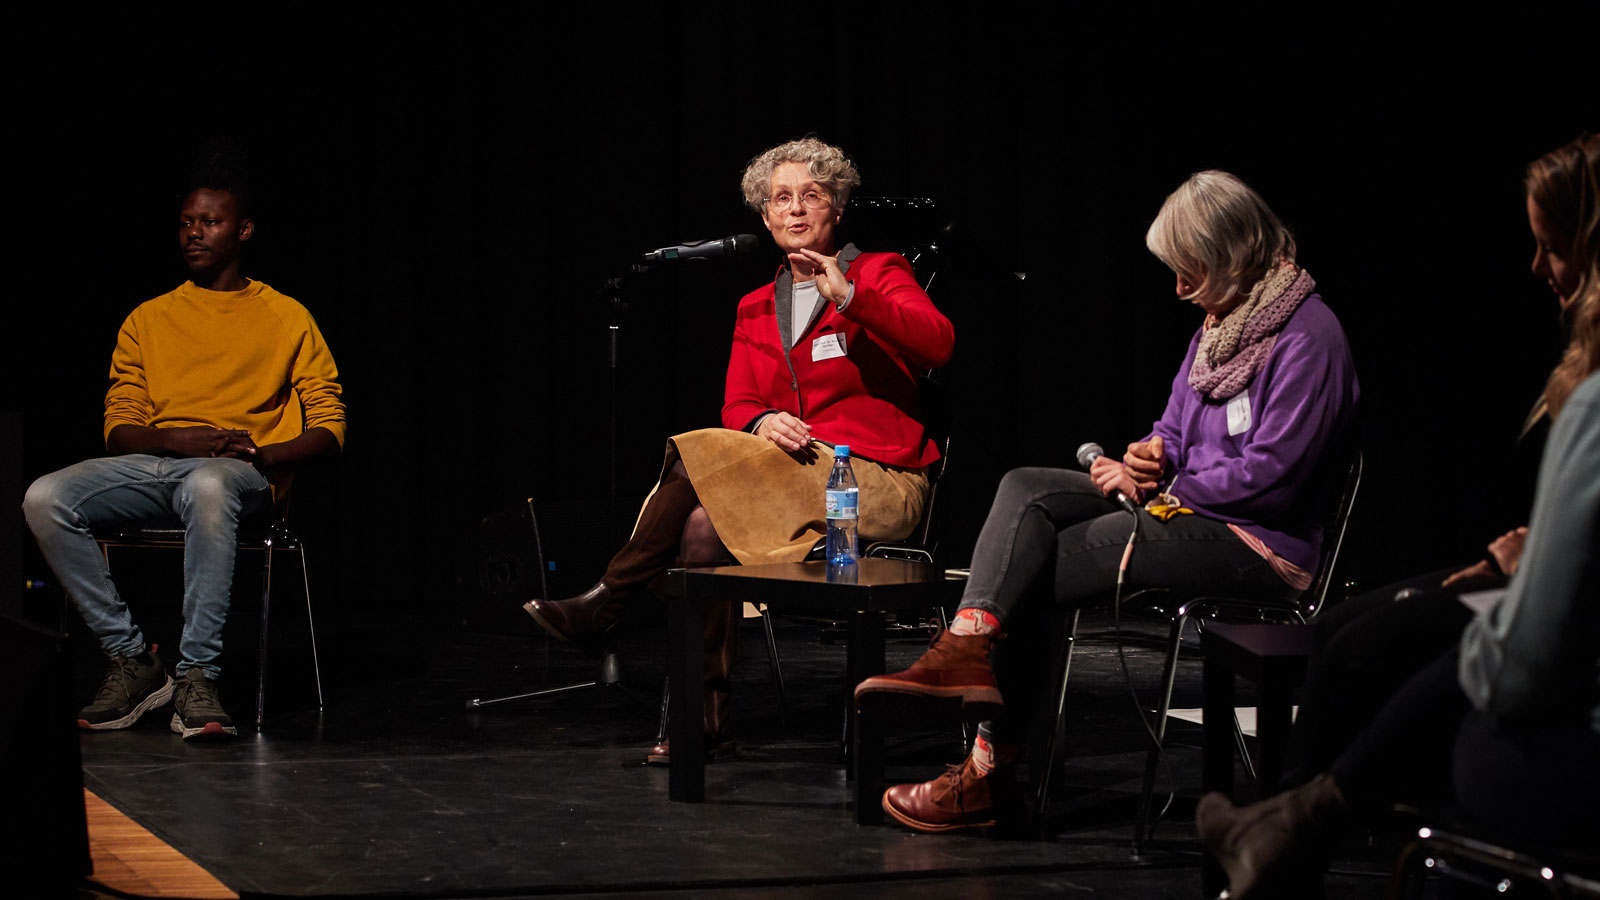 At the ALL IN Symposium. Dodzi Dougban, Dr. Susanne Quinten and Miriam Michel are sitting on the stage in a semicircle. ©Anna Spindelndreier